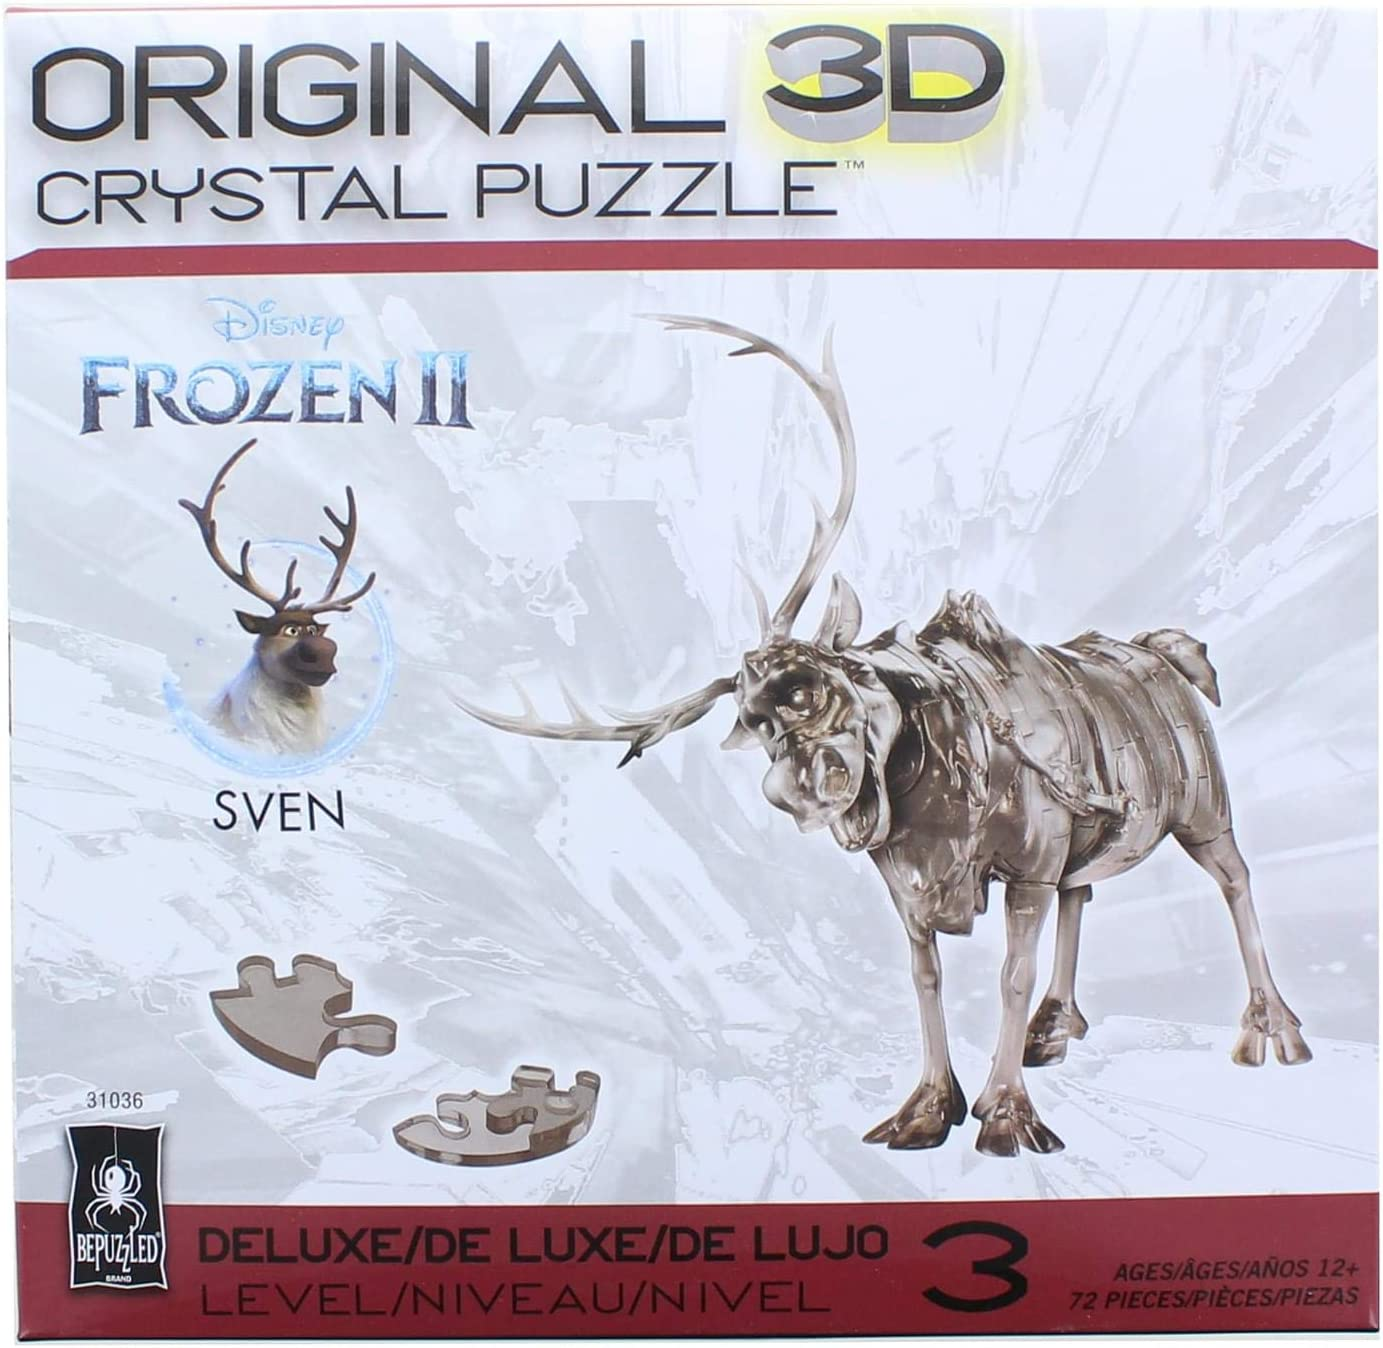 Amazon Com Bepuzzled Sven The Reindeer Frozen Deluxe Original 3d Deluxe Licensed Crystal Puzzle Fun Yet Challenging Brain Teaser That Will Test Your Skills And Imagination For Ages 12 Toys Games